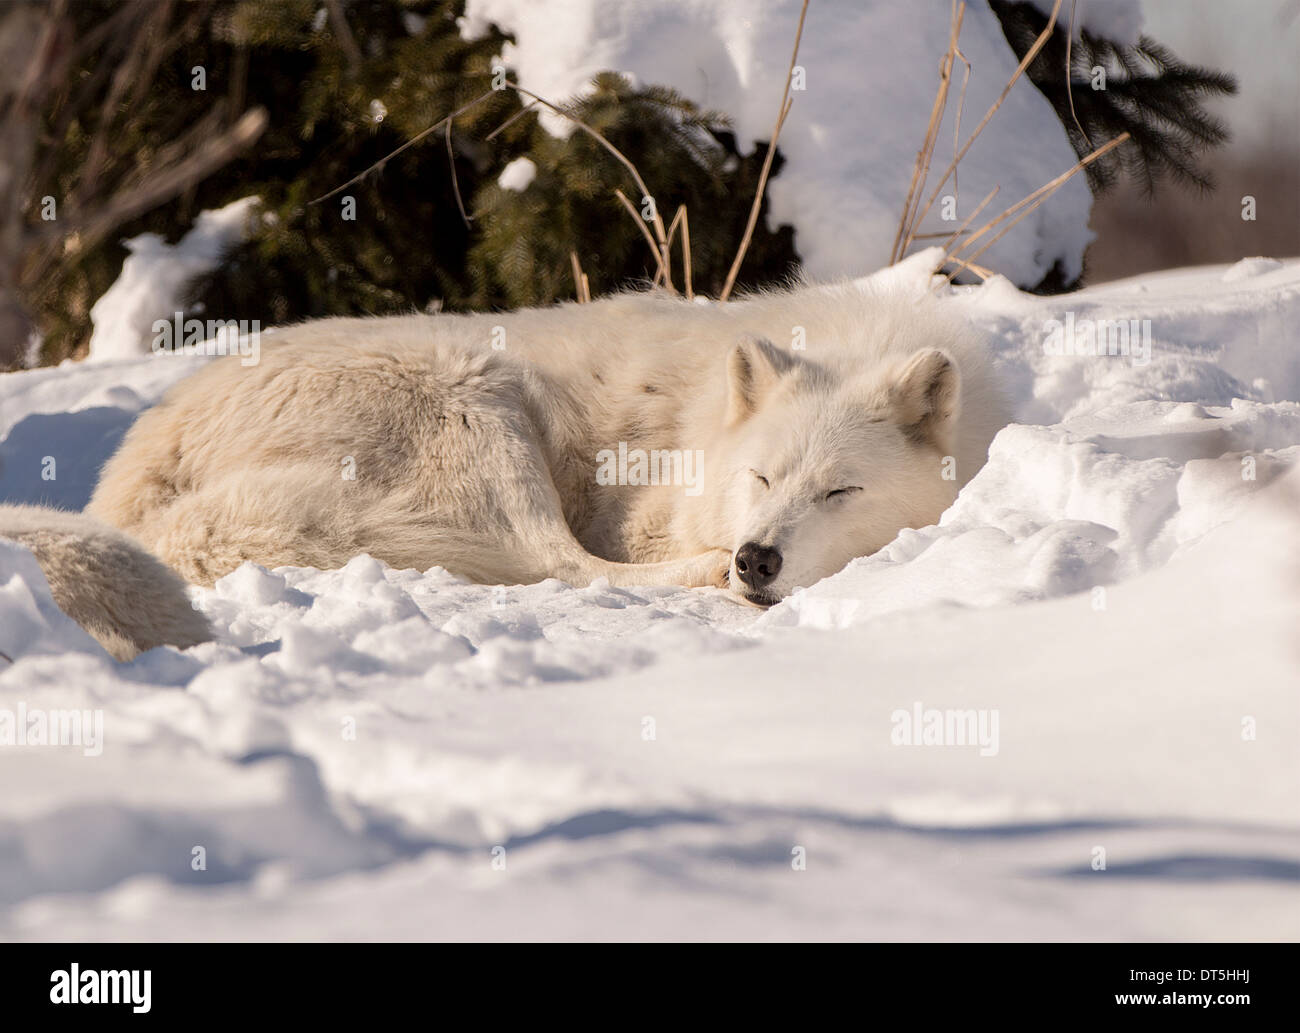 white-wolf-sleeping-in-the-snow-on-a-bright-sunny-day-DT5HHJ.jpg